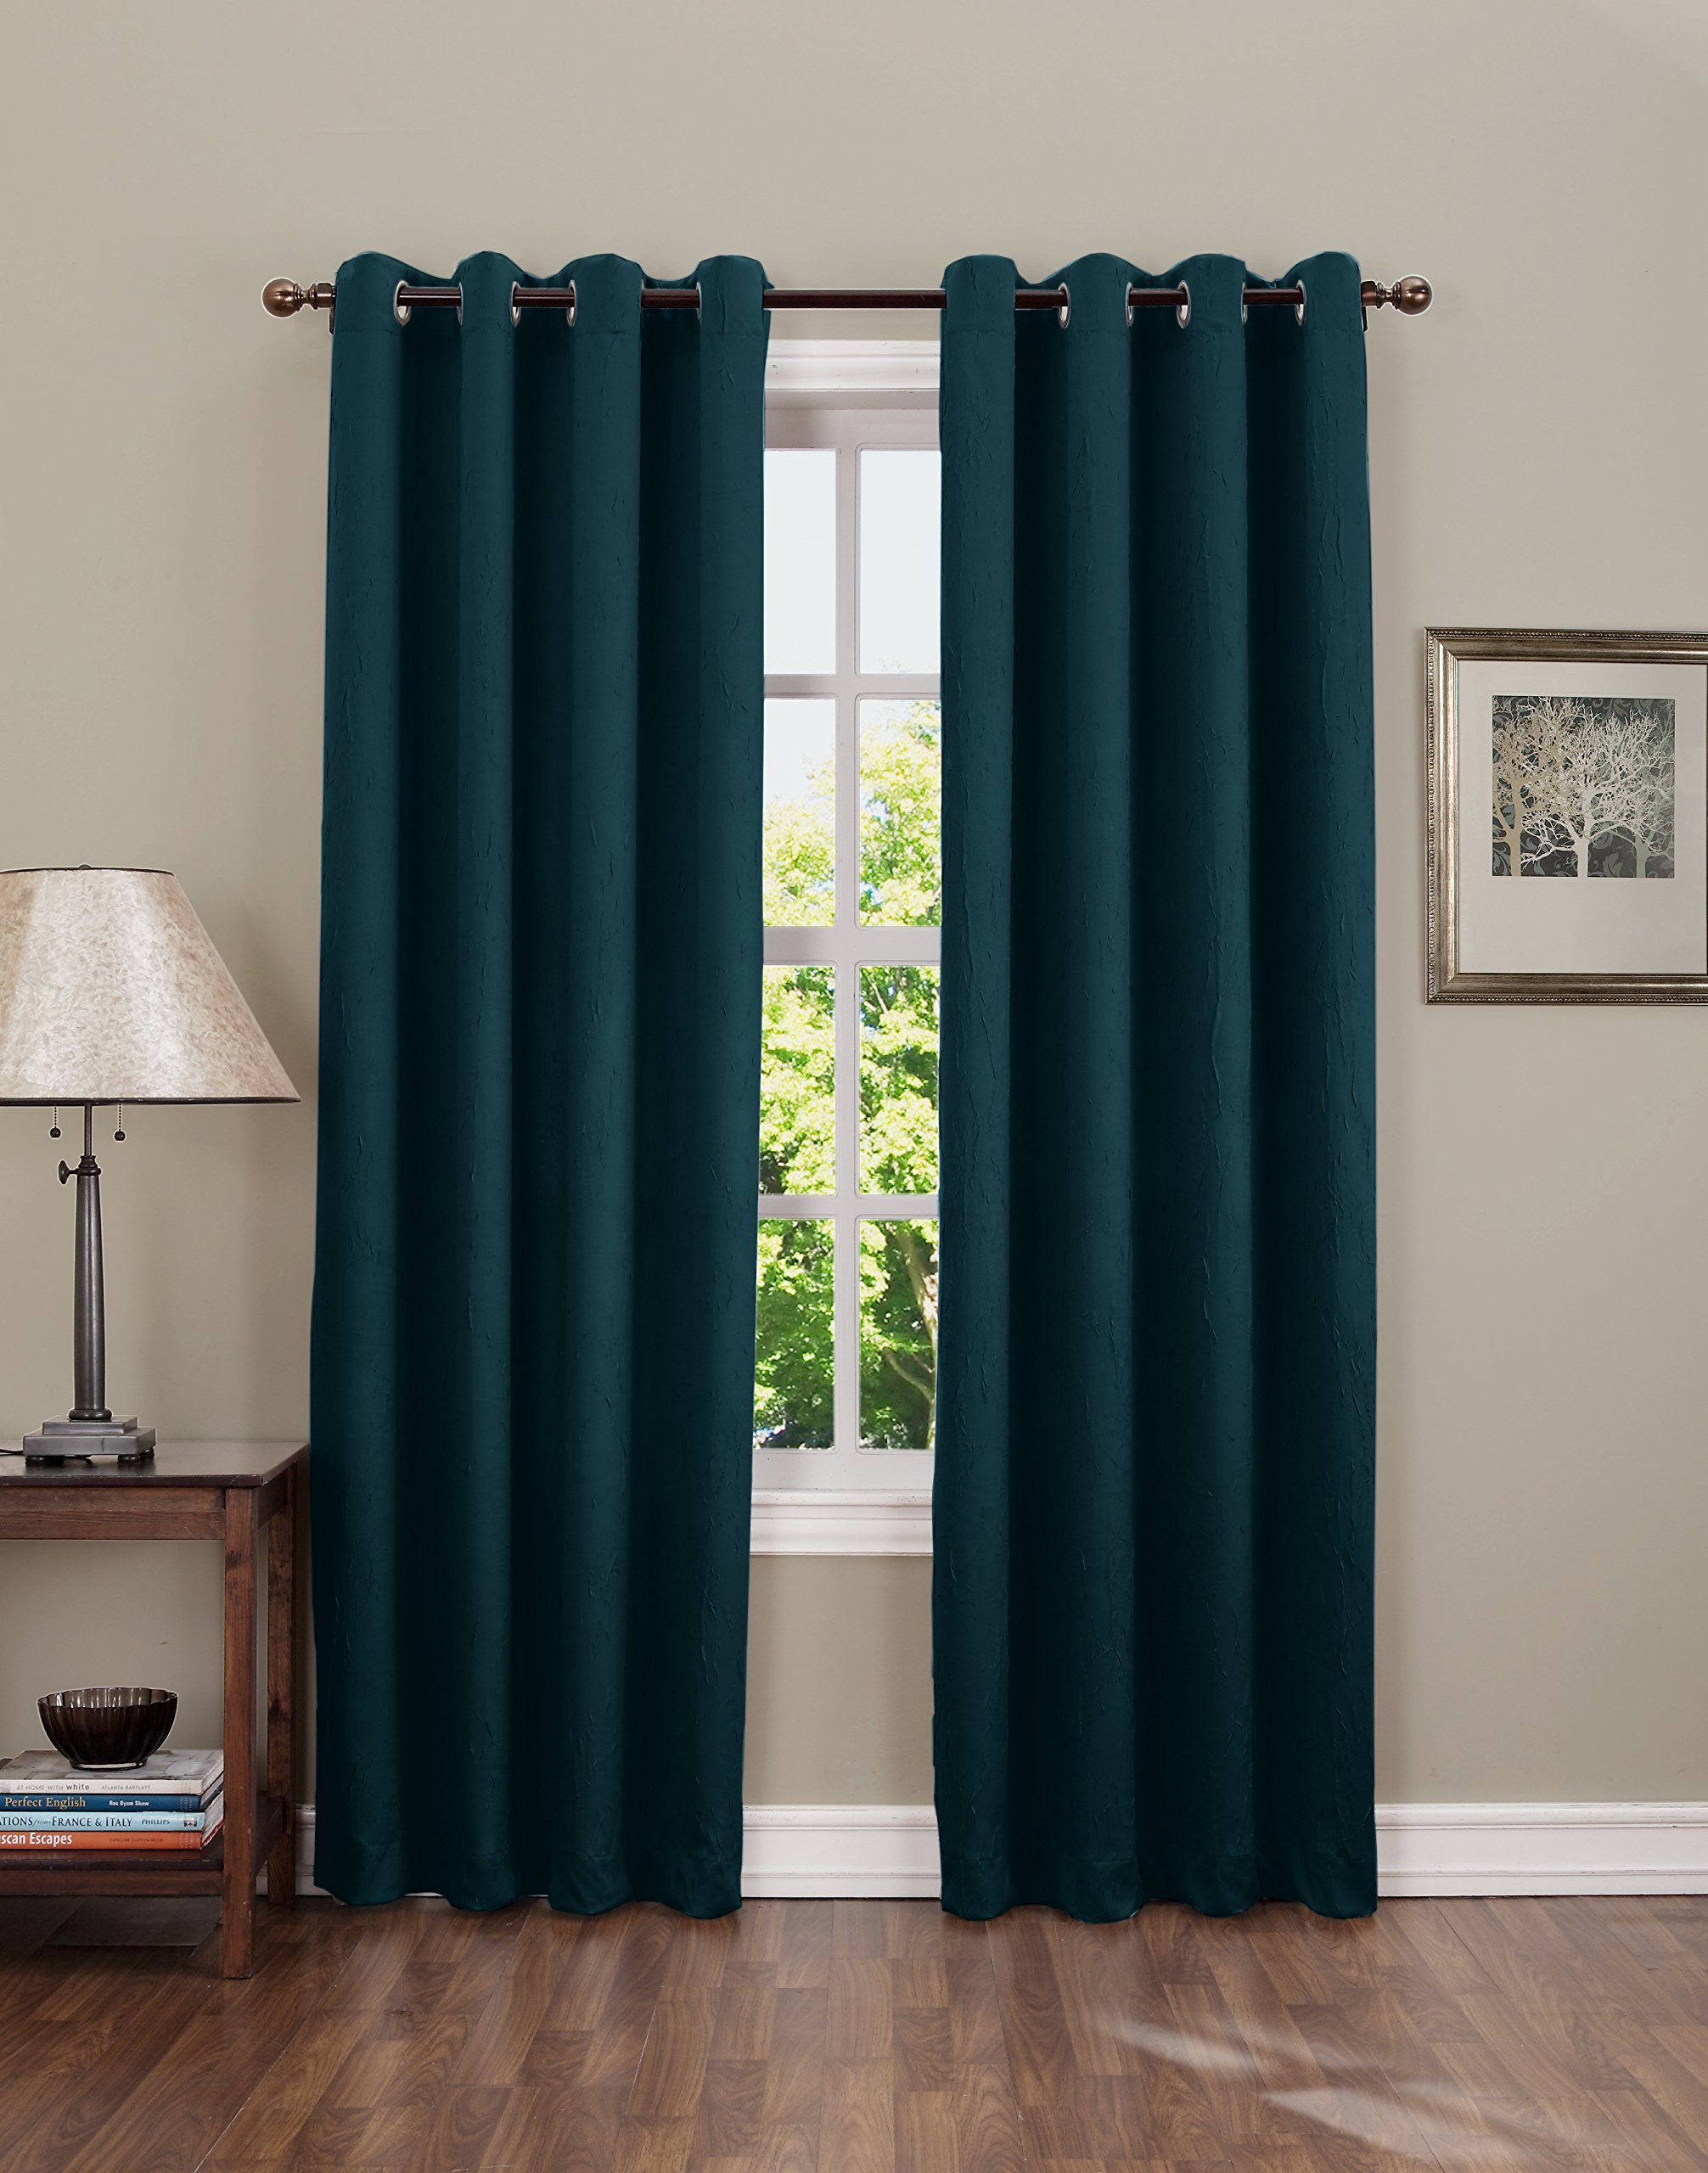 "Sun Zero Leighton Crushed Texture Energy Efficient Grommet Curtain Panel, 50"" x 84"", Teal - Crushed fabric provides unique crinkled texture Room Darkening technology blocks out some unwanted light while enhancing privacy Energy efficient design reduces energy lost through your windows by up to 25% - living-room-soft-furnishings, living-room, draperies-curtains-shades - 81kgseIjdAL -"